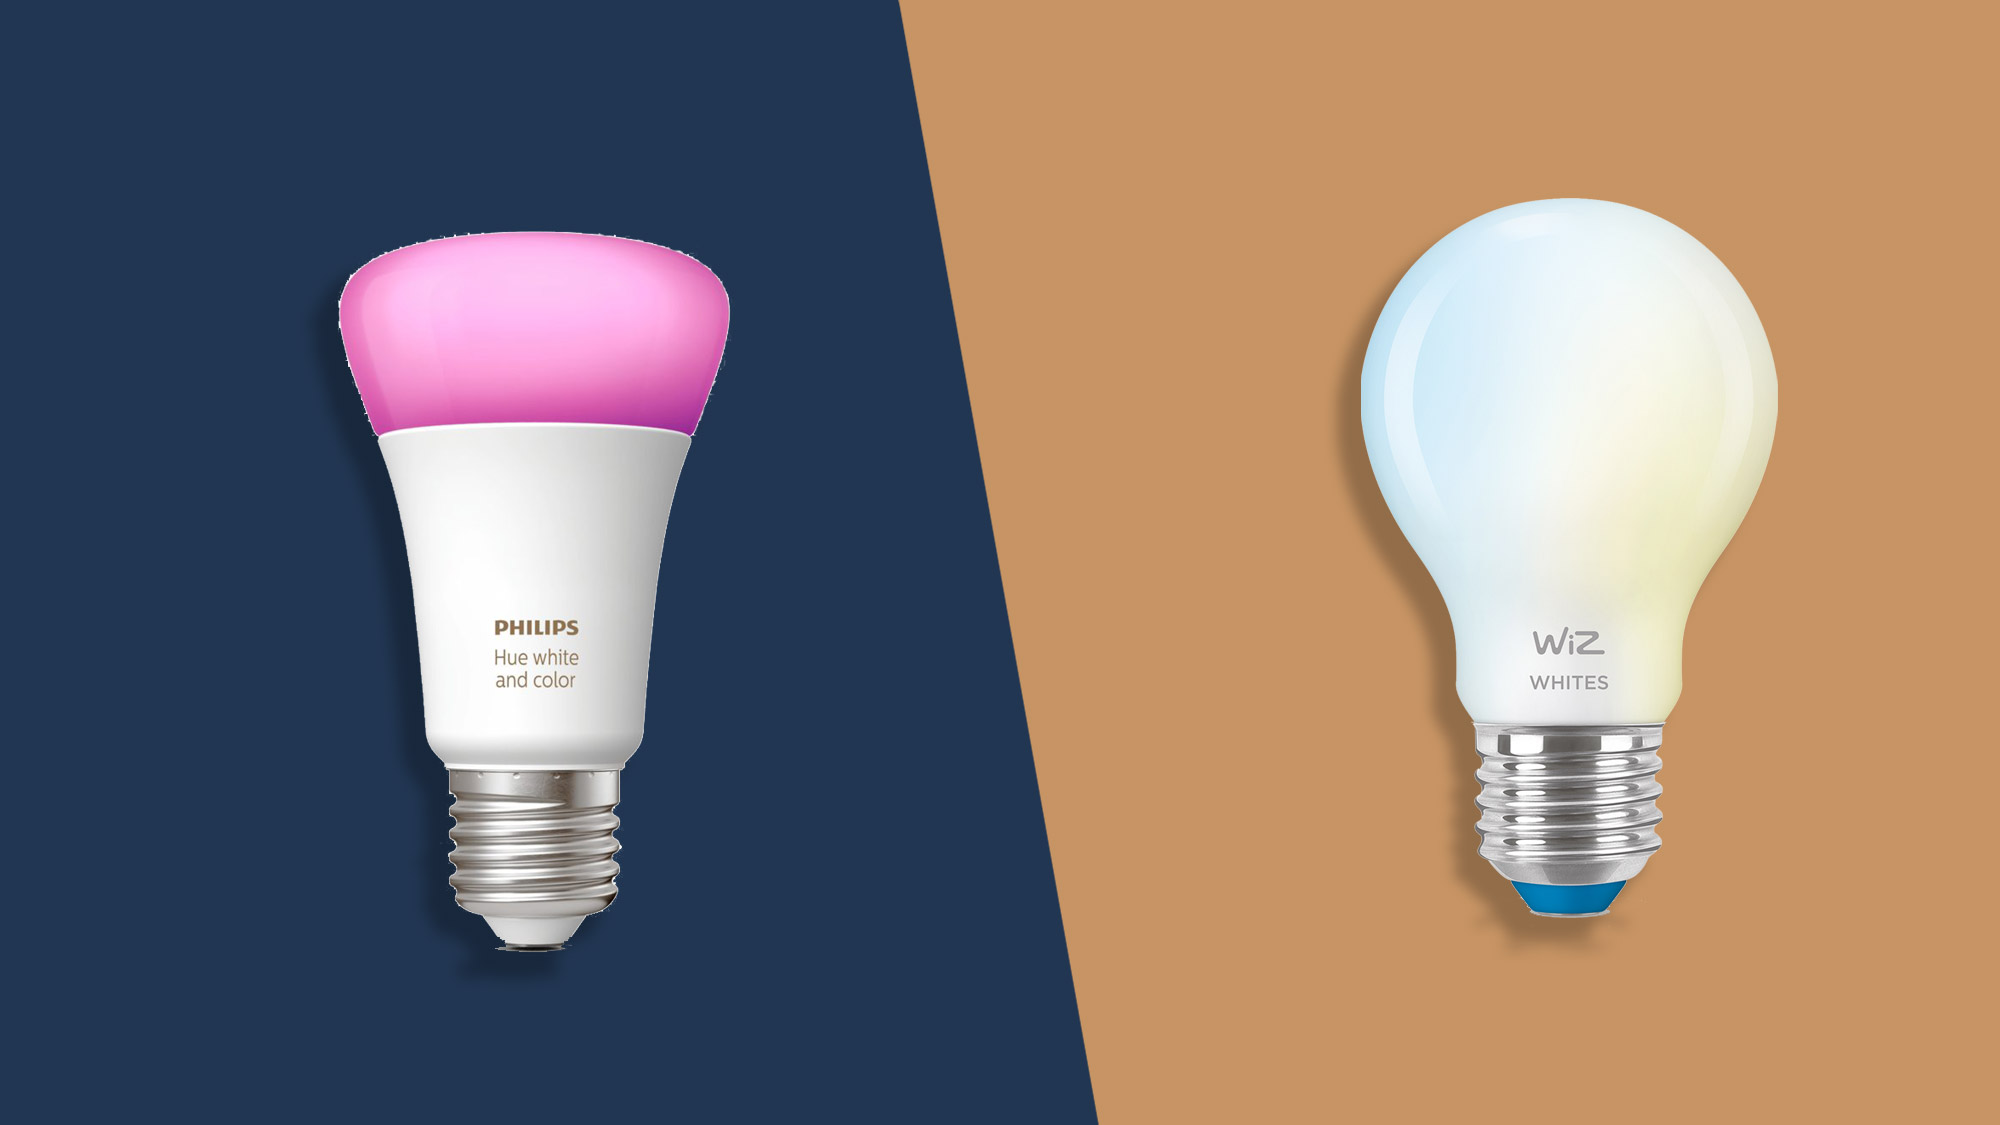 Philips Hue vs WiZ: which smart lights are right for your home?